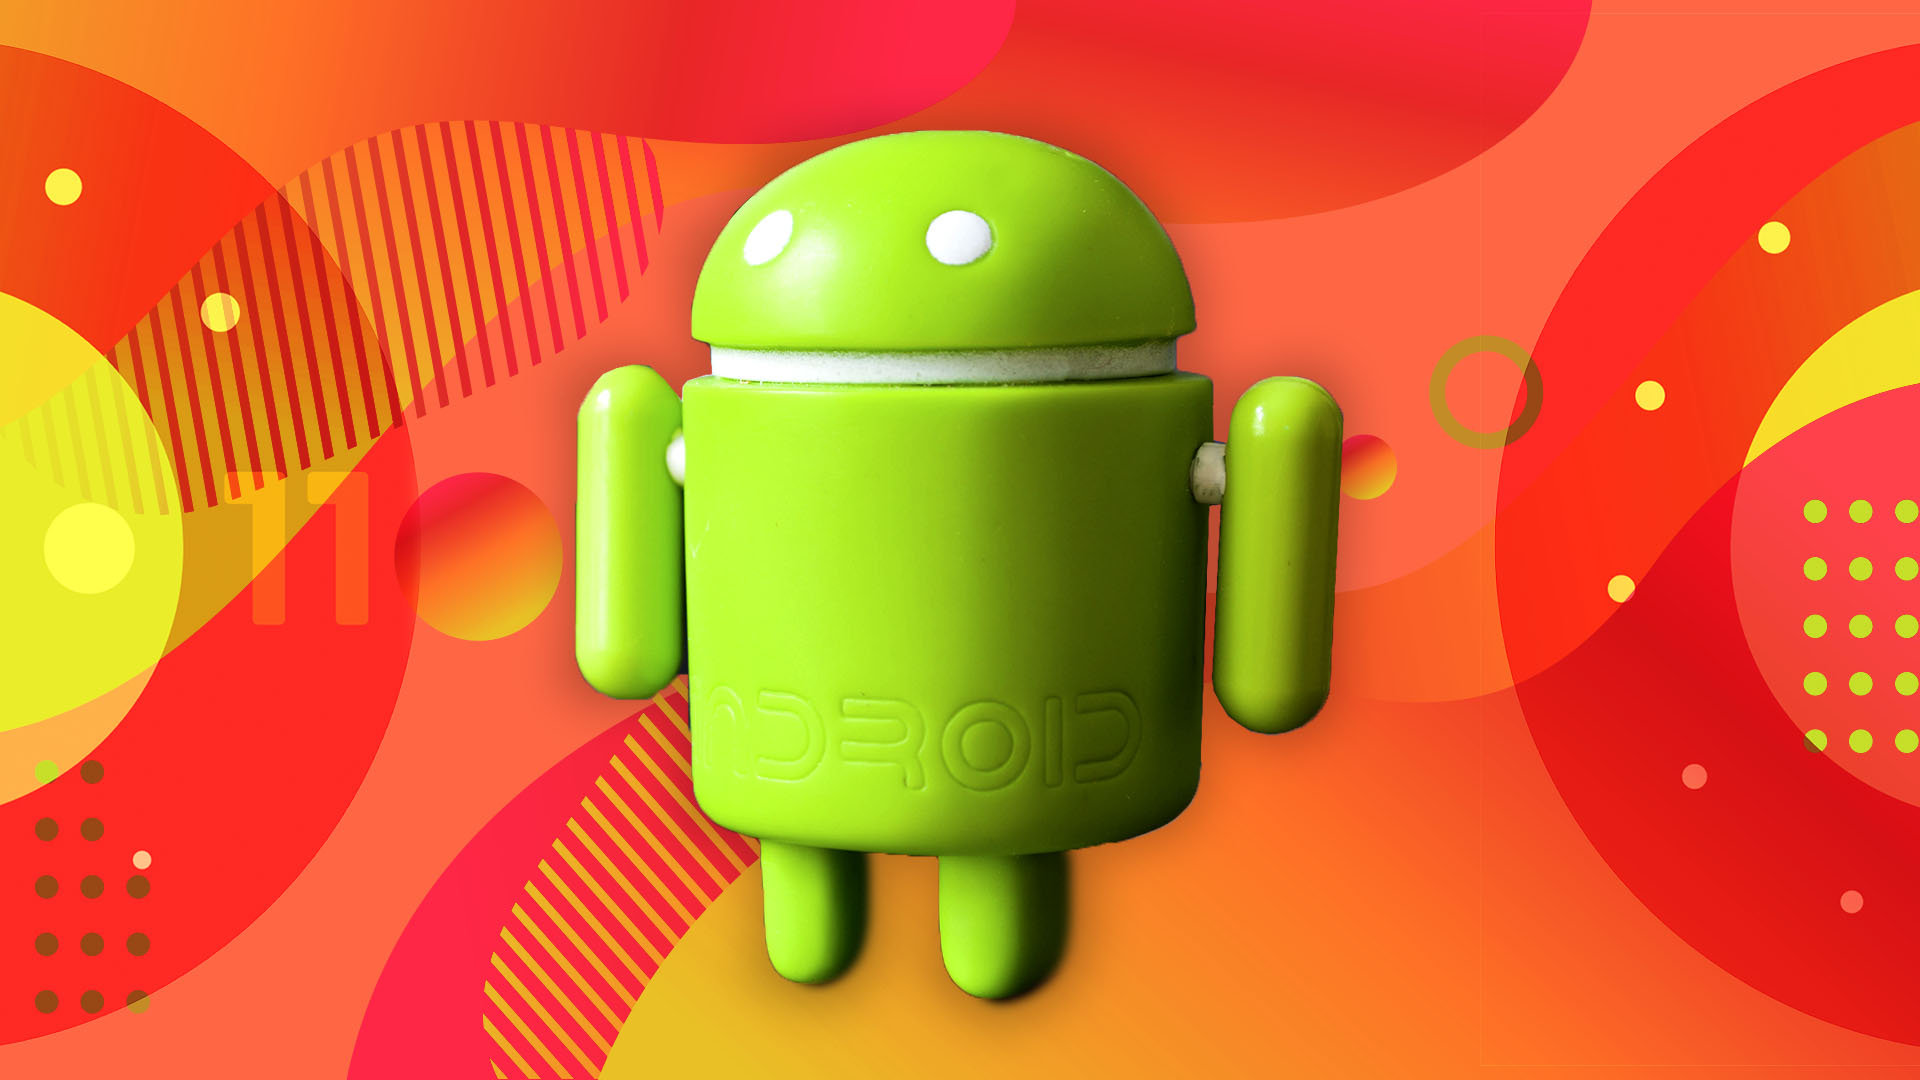 Betriebssystem, Google, Android, Google Android, Android 11, Google Android 11, Android 11 Beta, Android Logo, Bugdroid, Android Figur, Android Männchen